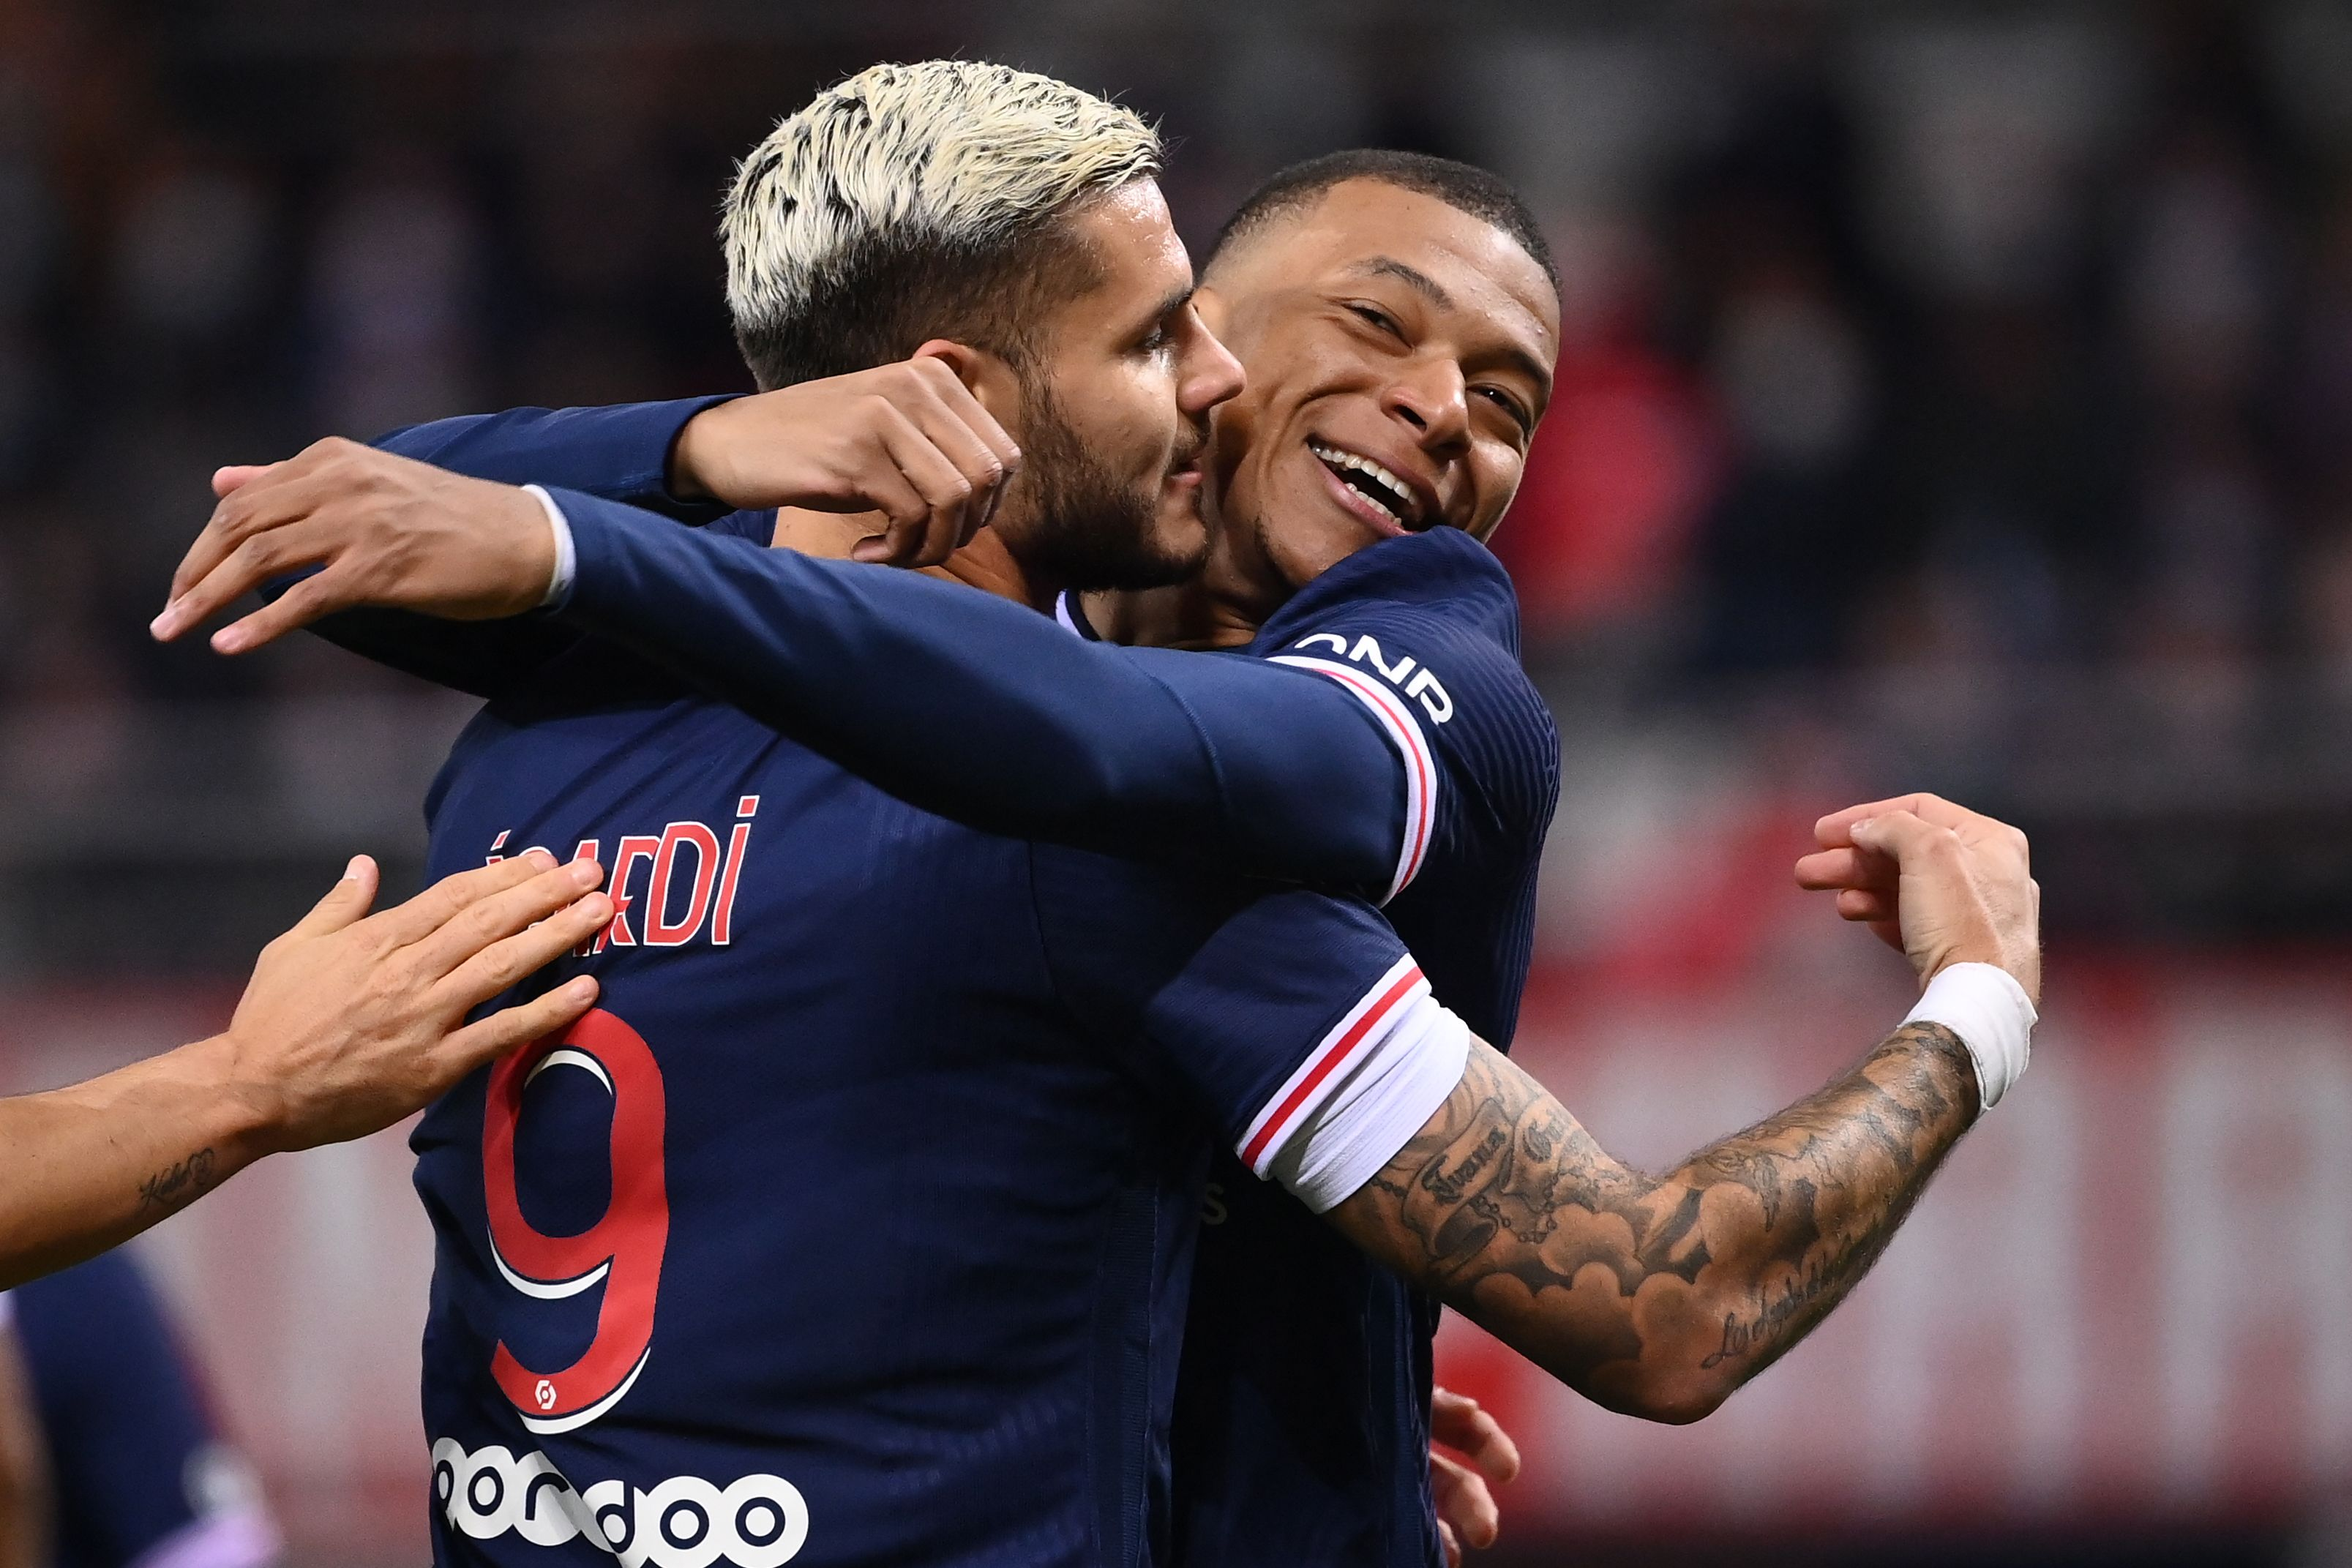 Report Psg S Projected Starting 11 For Champions League Fixture Against Barcelona Psg Talk